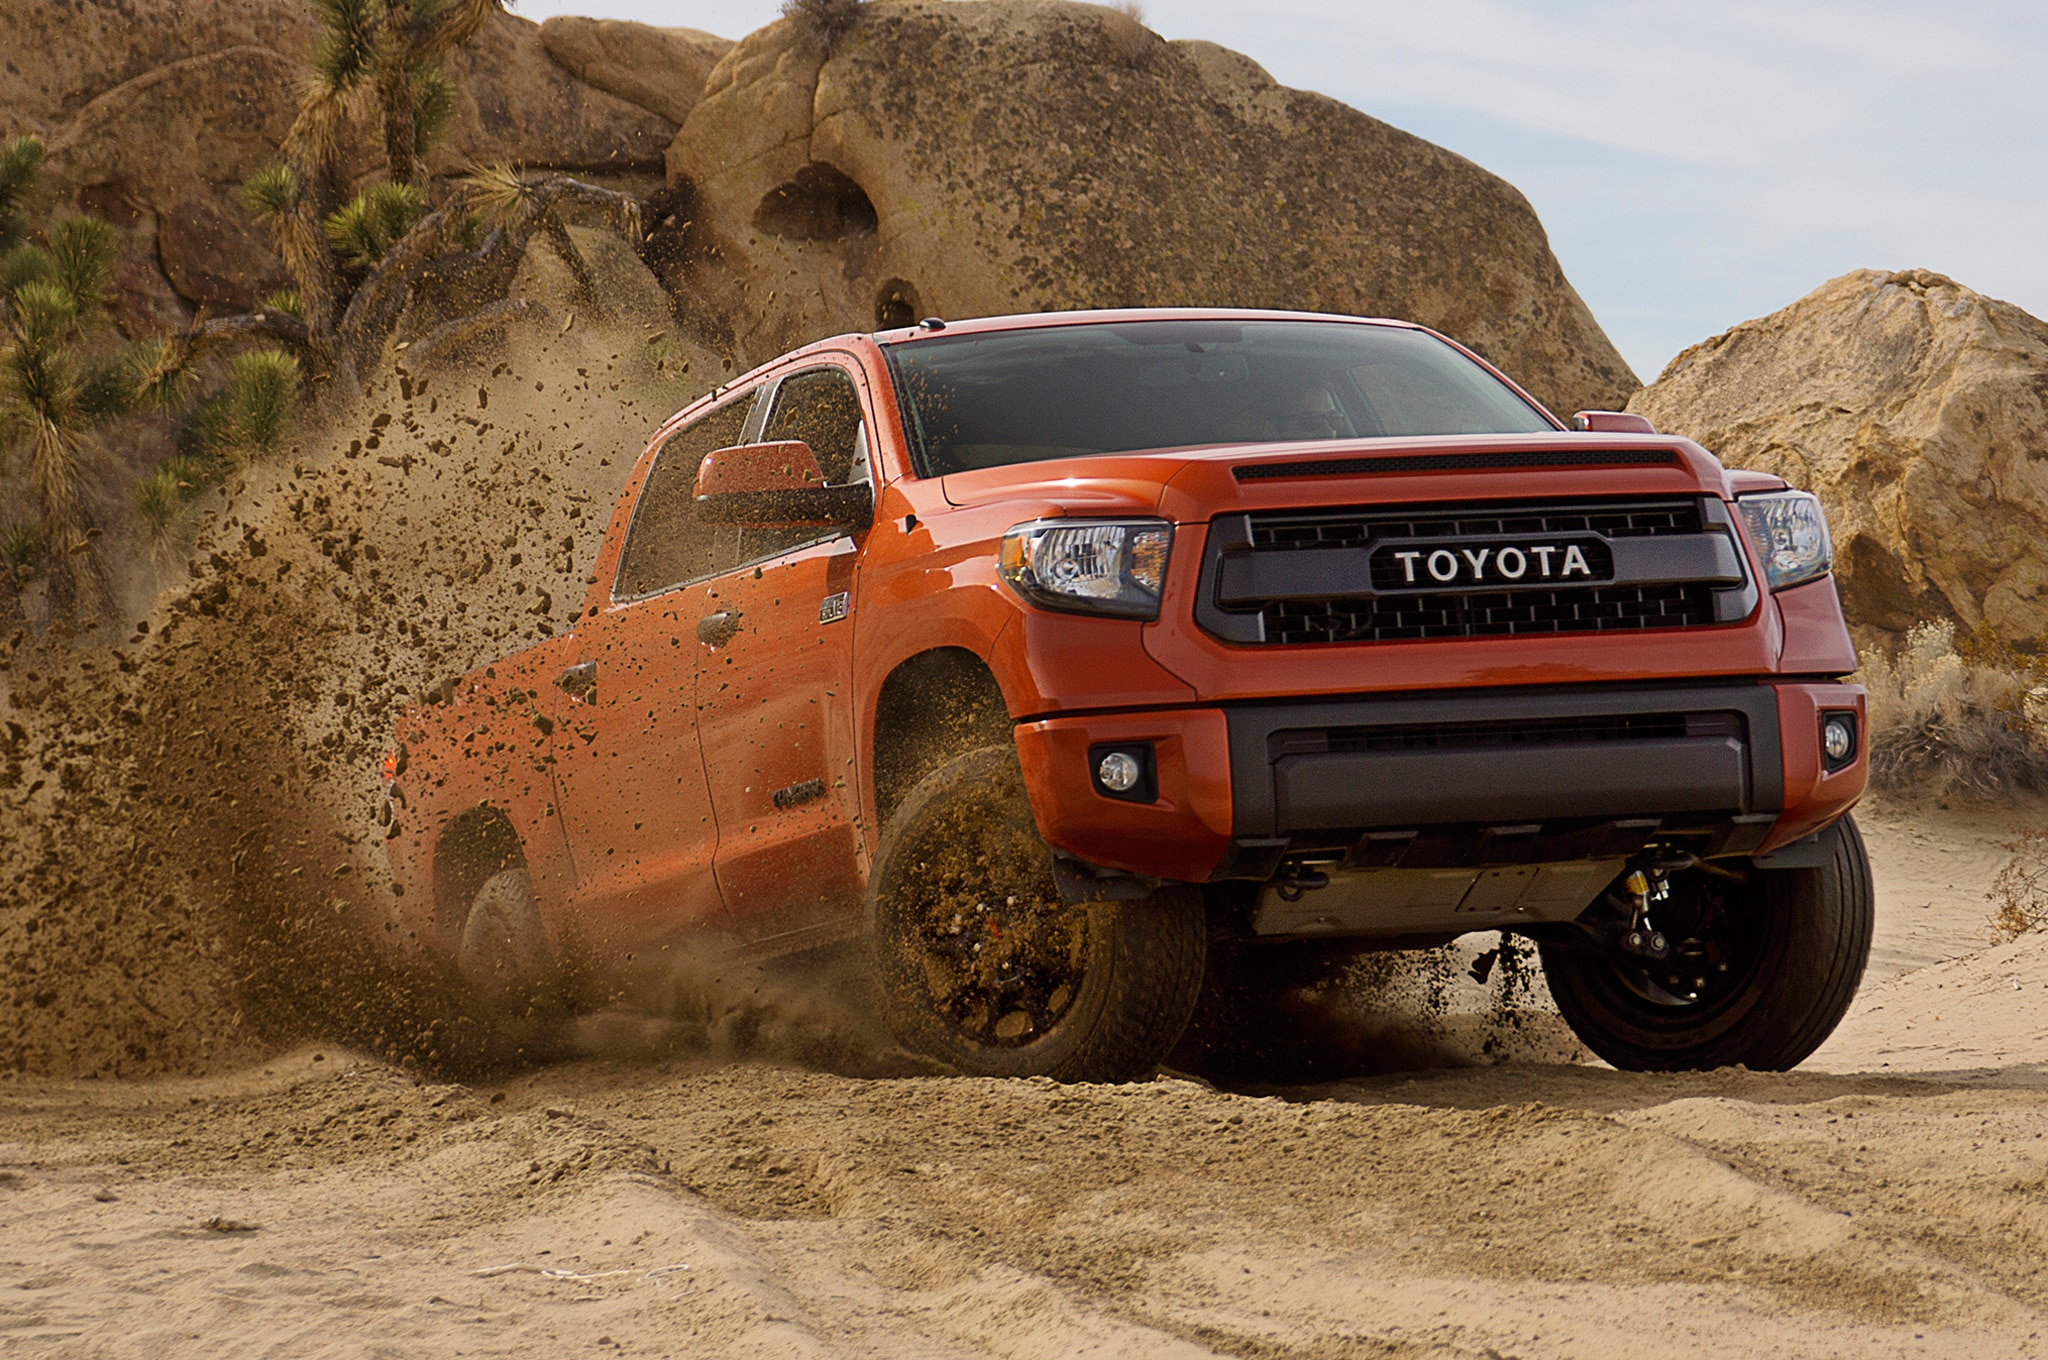 2015 Toyota 4Runner Tacoma Tundra TRD Pro Review  Automobile